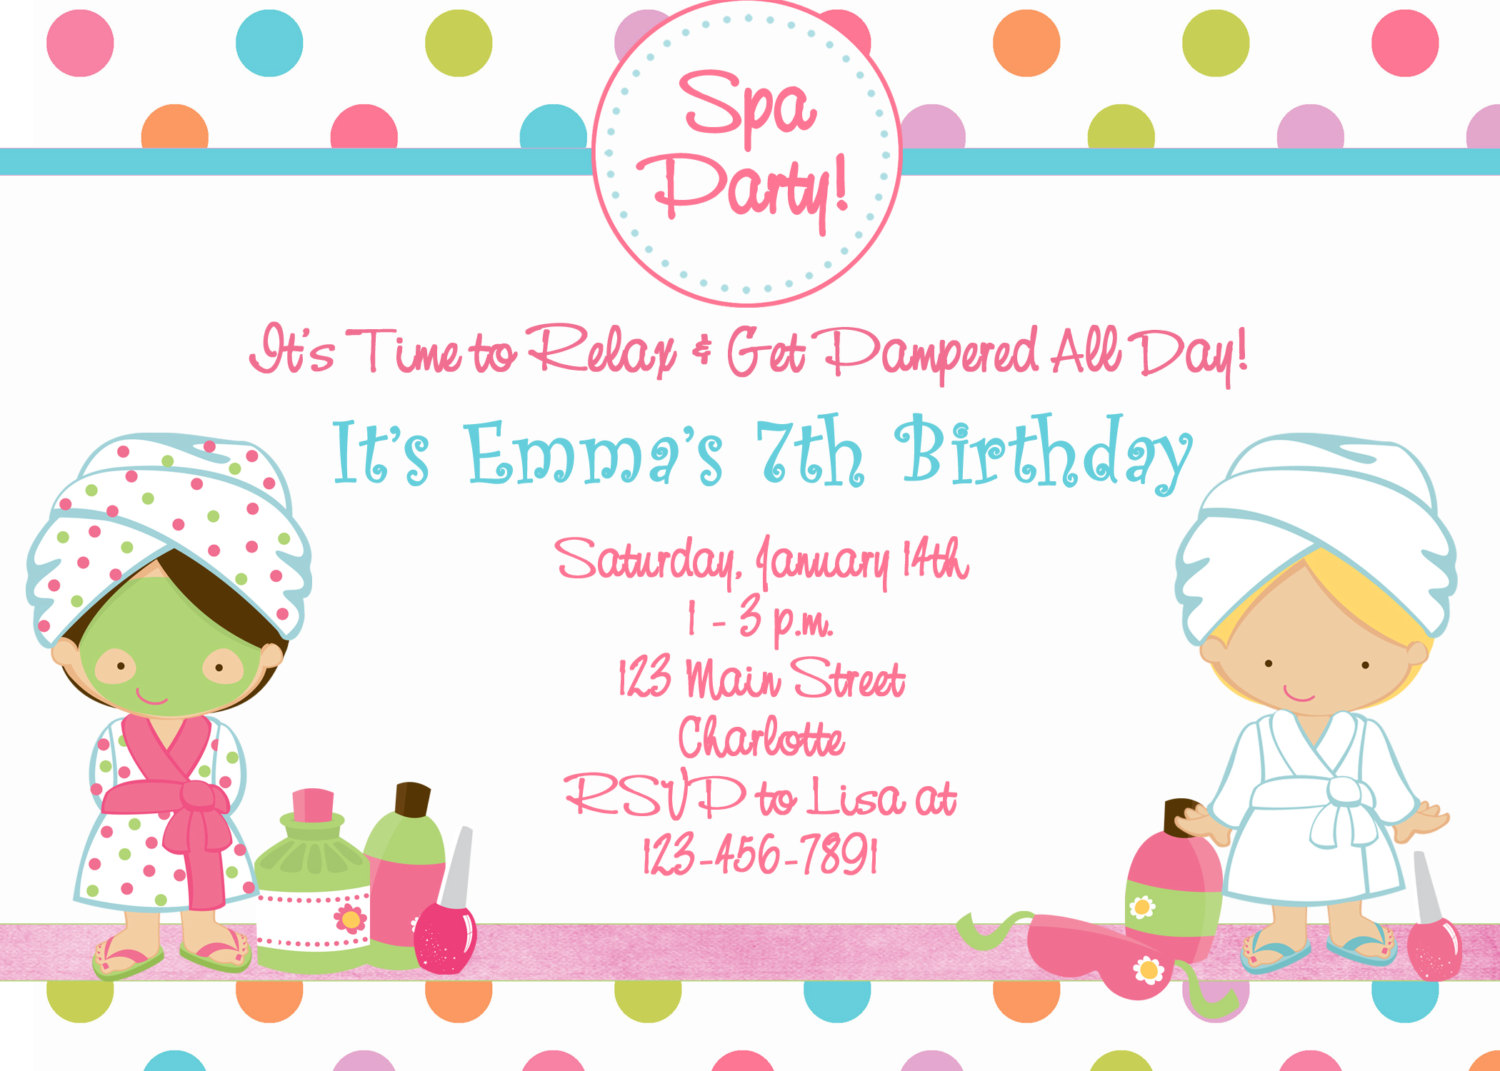 free printable spa birthday party invitations - Gidiye ...